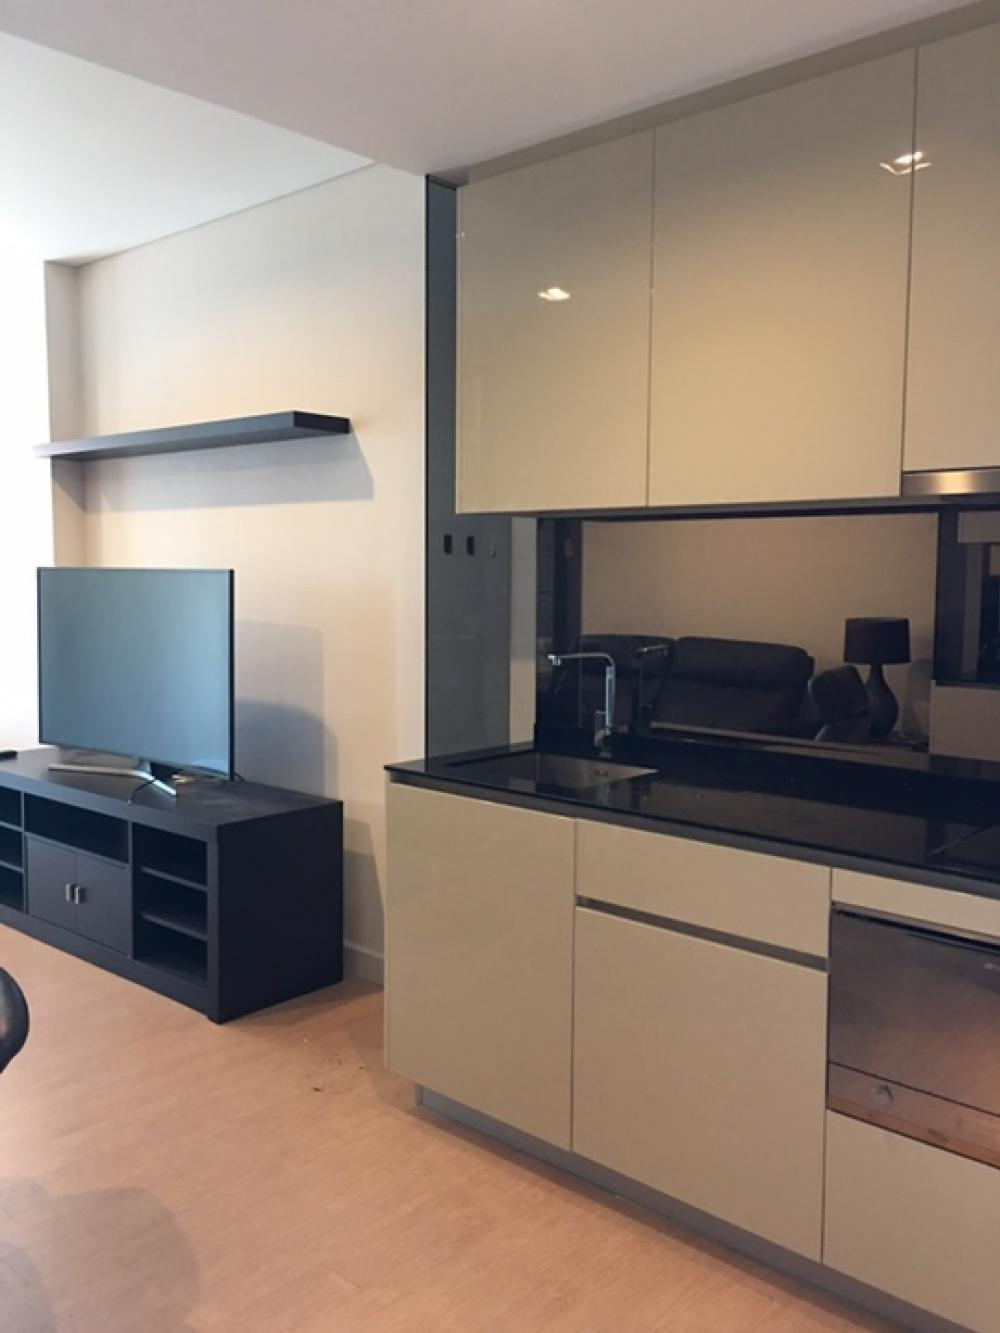 For RentCondoSathorn, Narathiwat : (GBL0168) Room For RentProject name: The room Charoenkrung 30 / The Room Charoenkrung 30